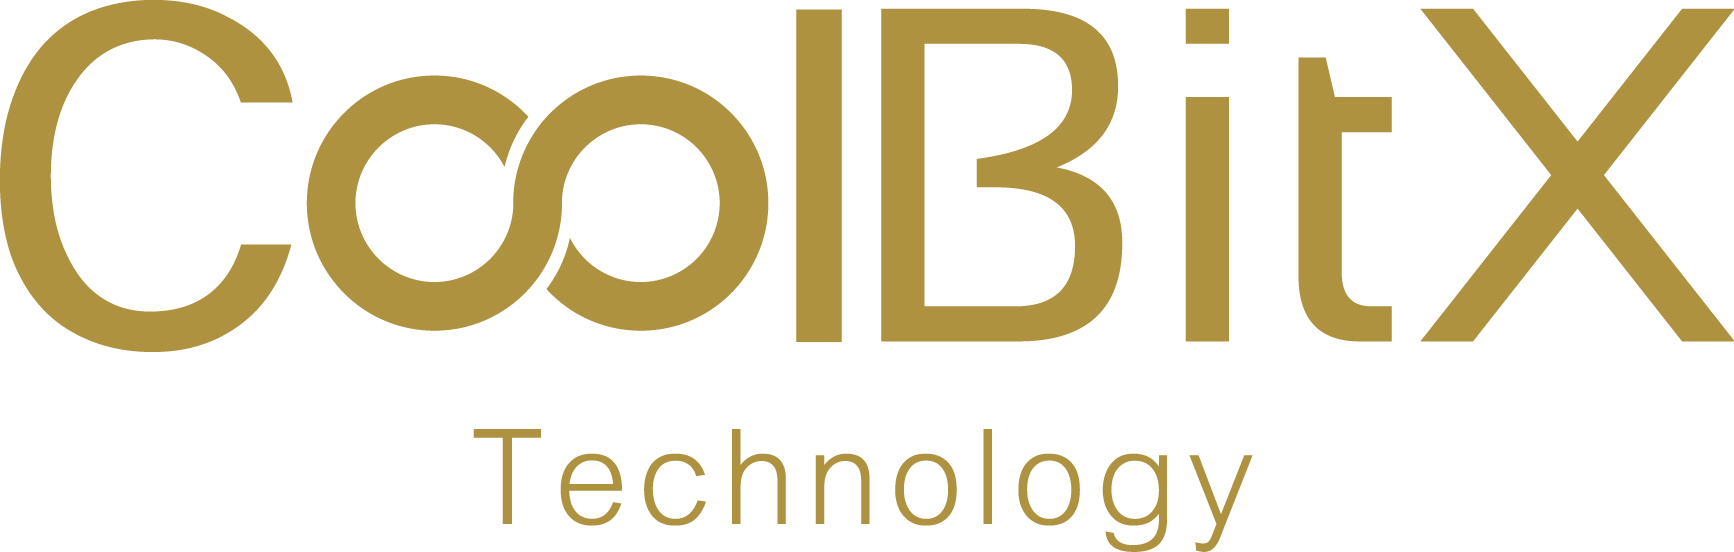 CoolBitX gold logo